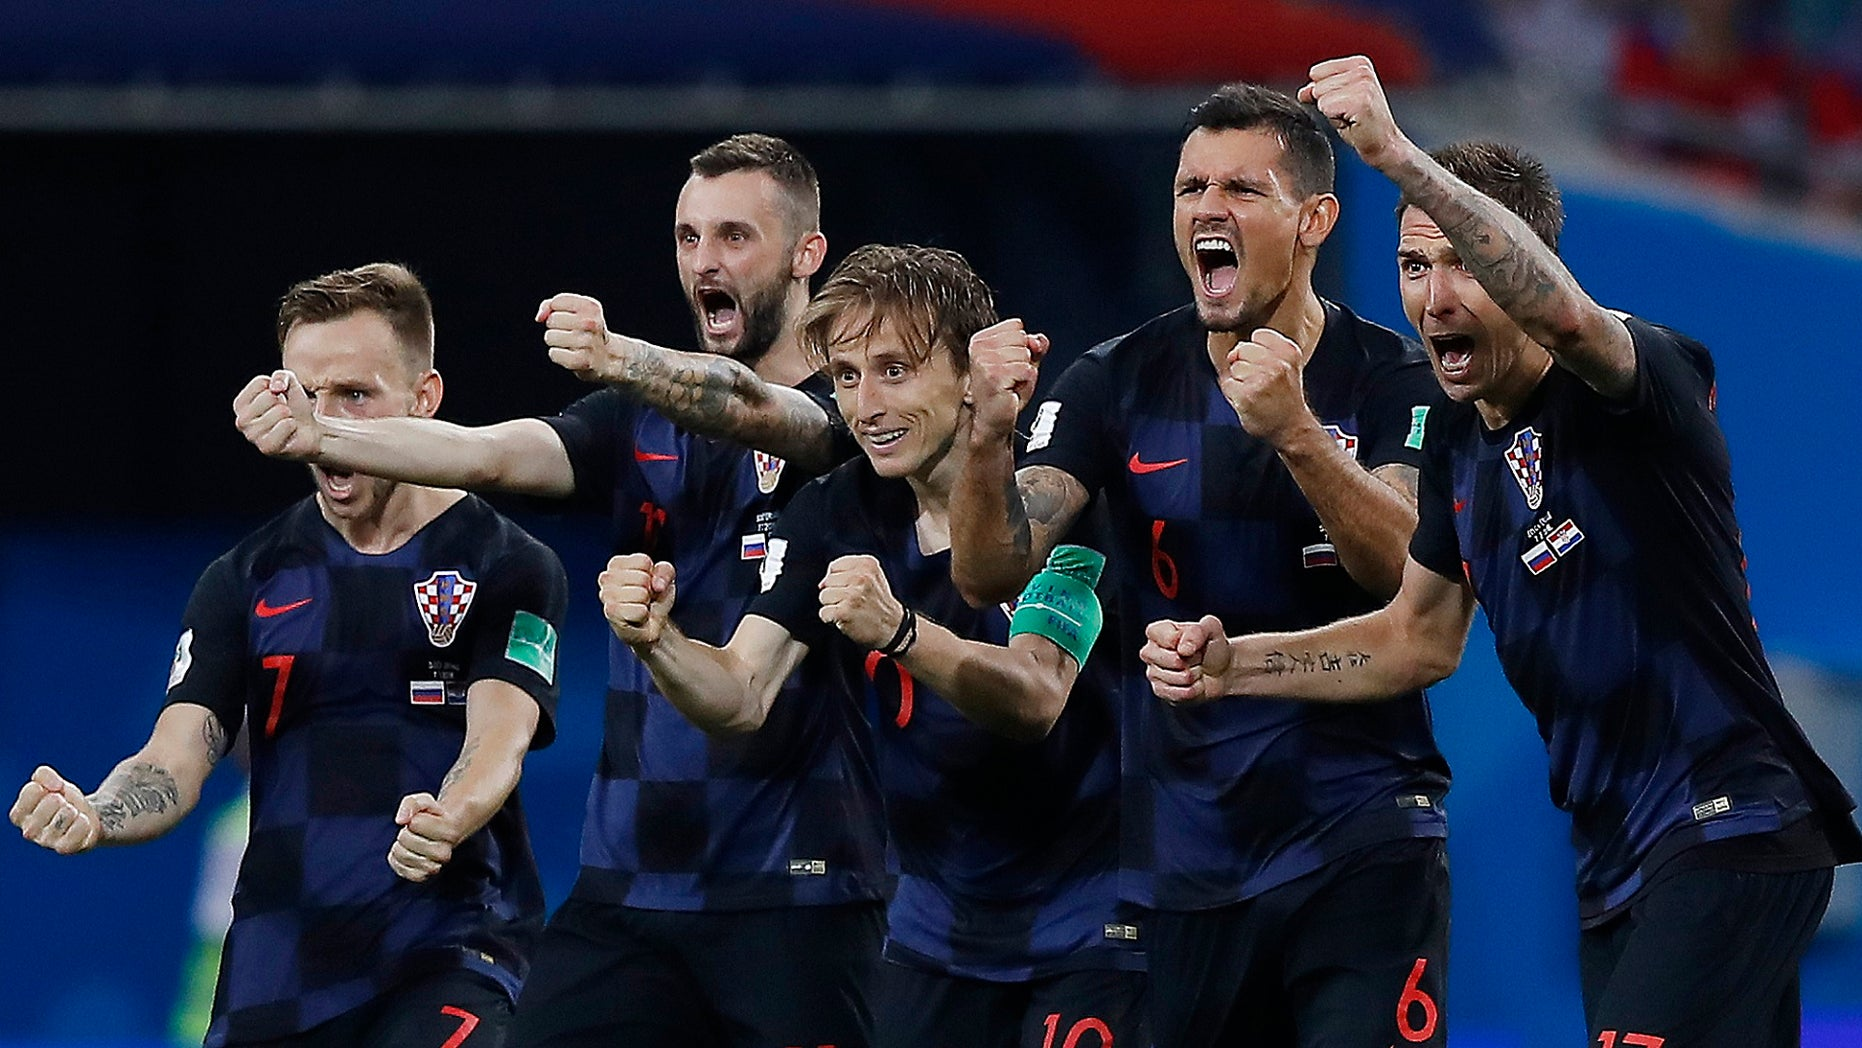 Croatia national soccer team players celebrate after a penalty is saved in a shootout during the quarterfinal match of this year's World Cup tourney. Croatia won the match 4-3.